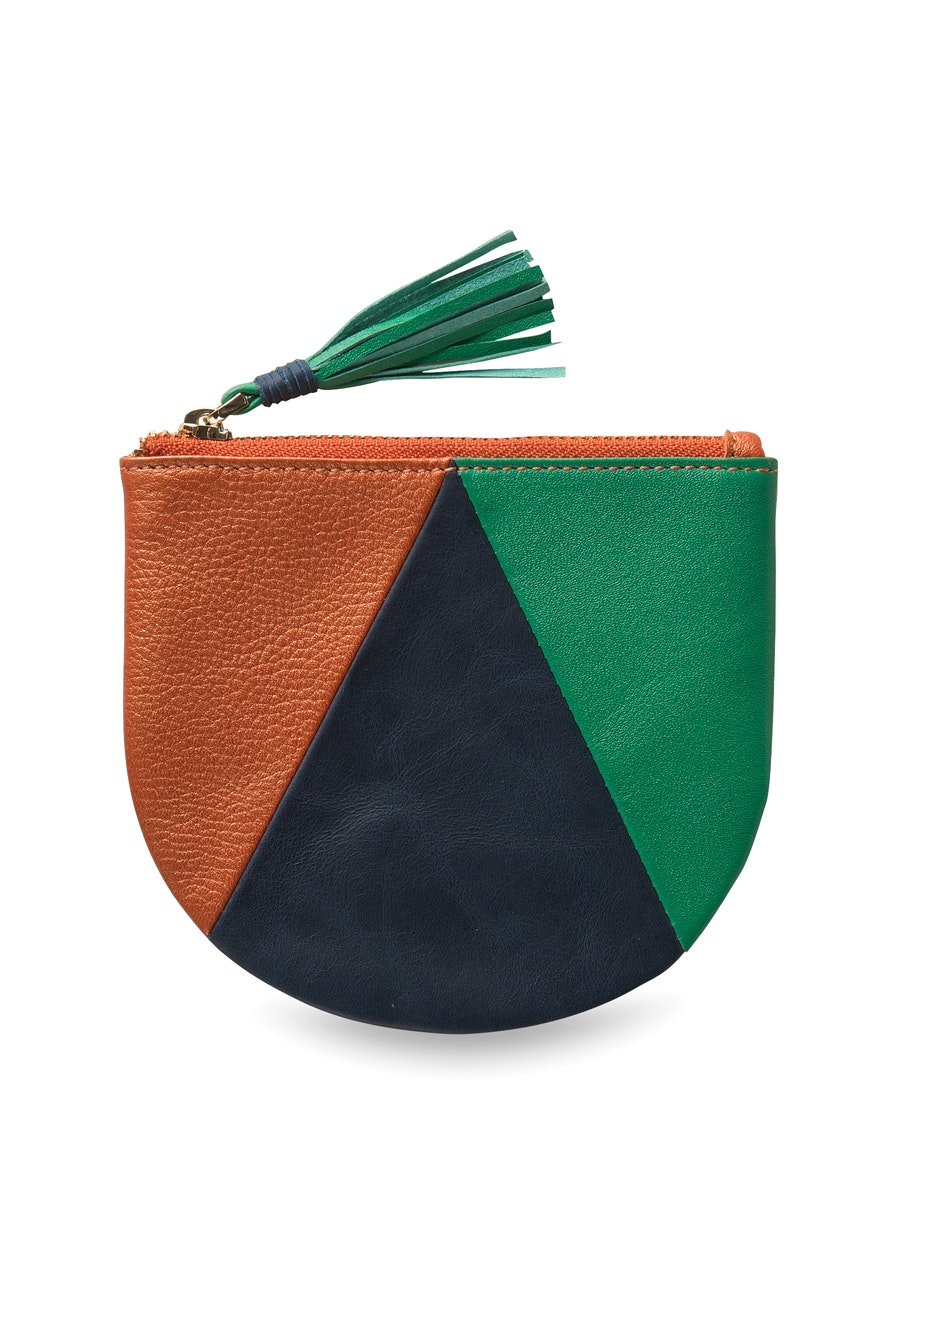 Città - Slice Leather Coin Purse Saffron/Indigo/Leaf  13x11cmh